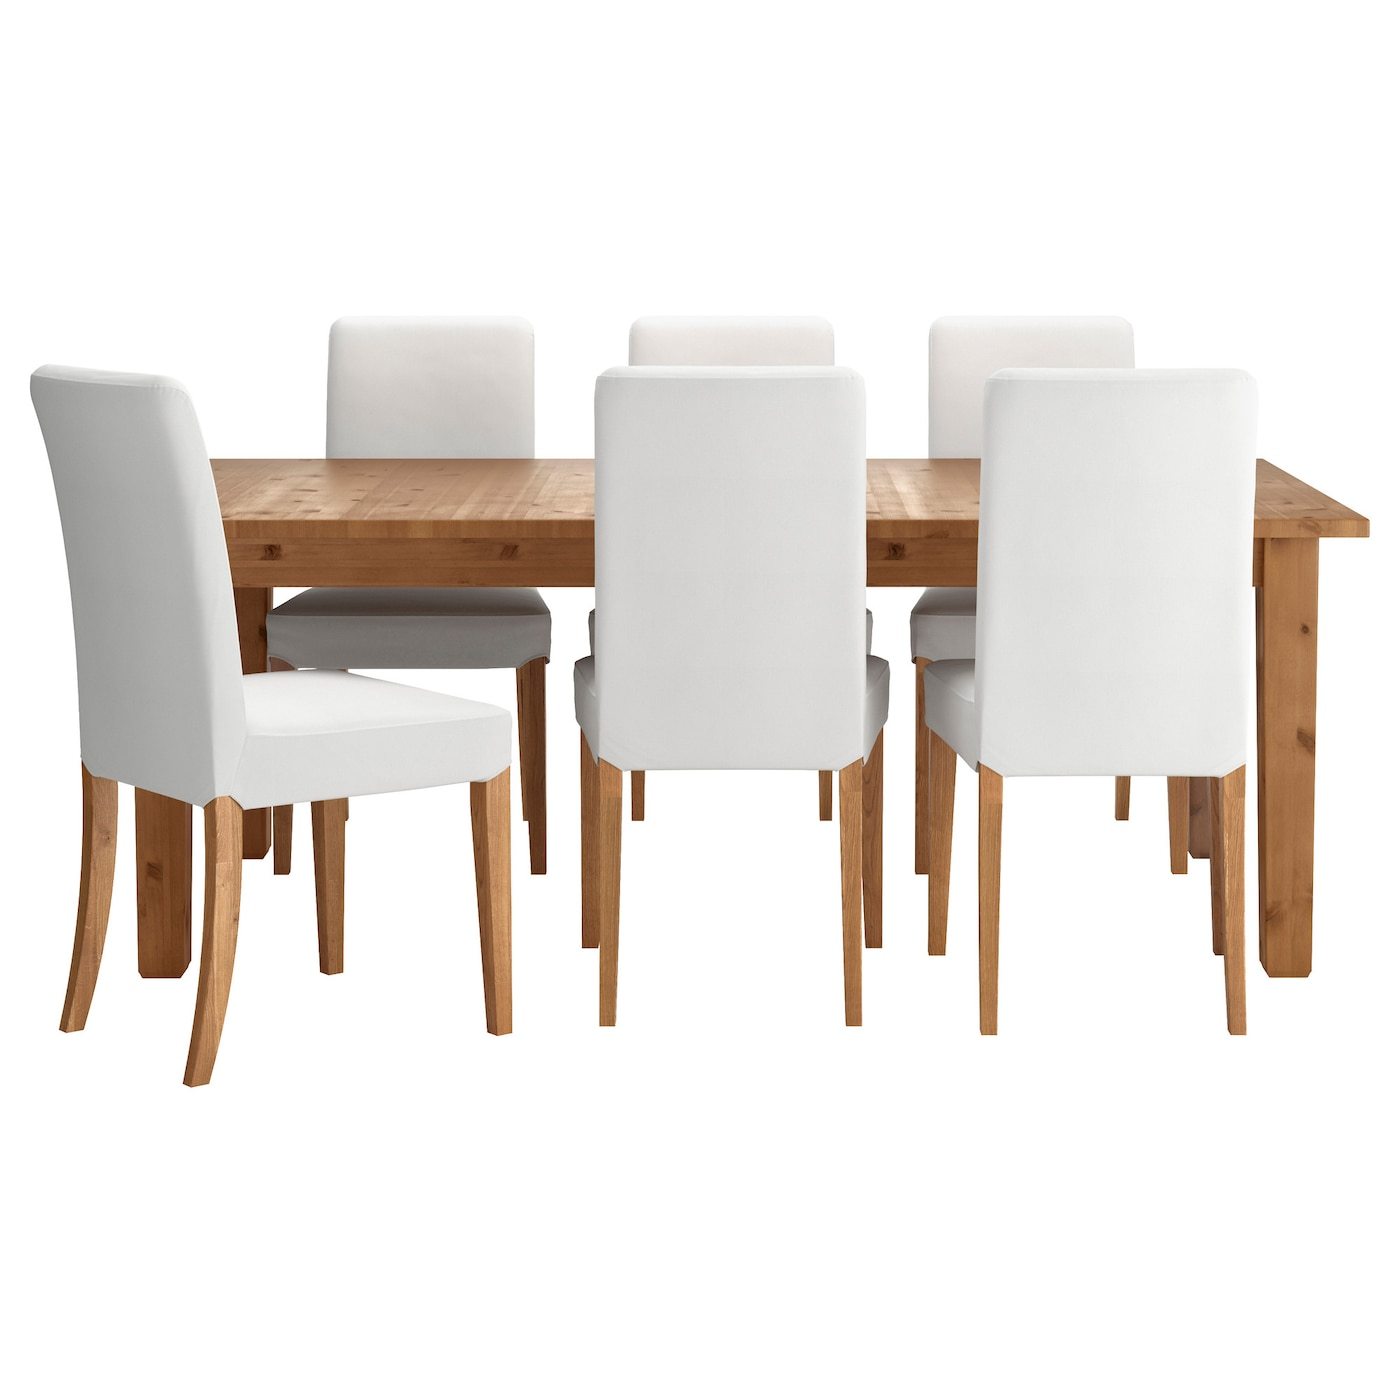 Henriksdal storn s table and 6 chairs antique stain gr sbo for Table a manger ikea